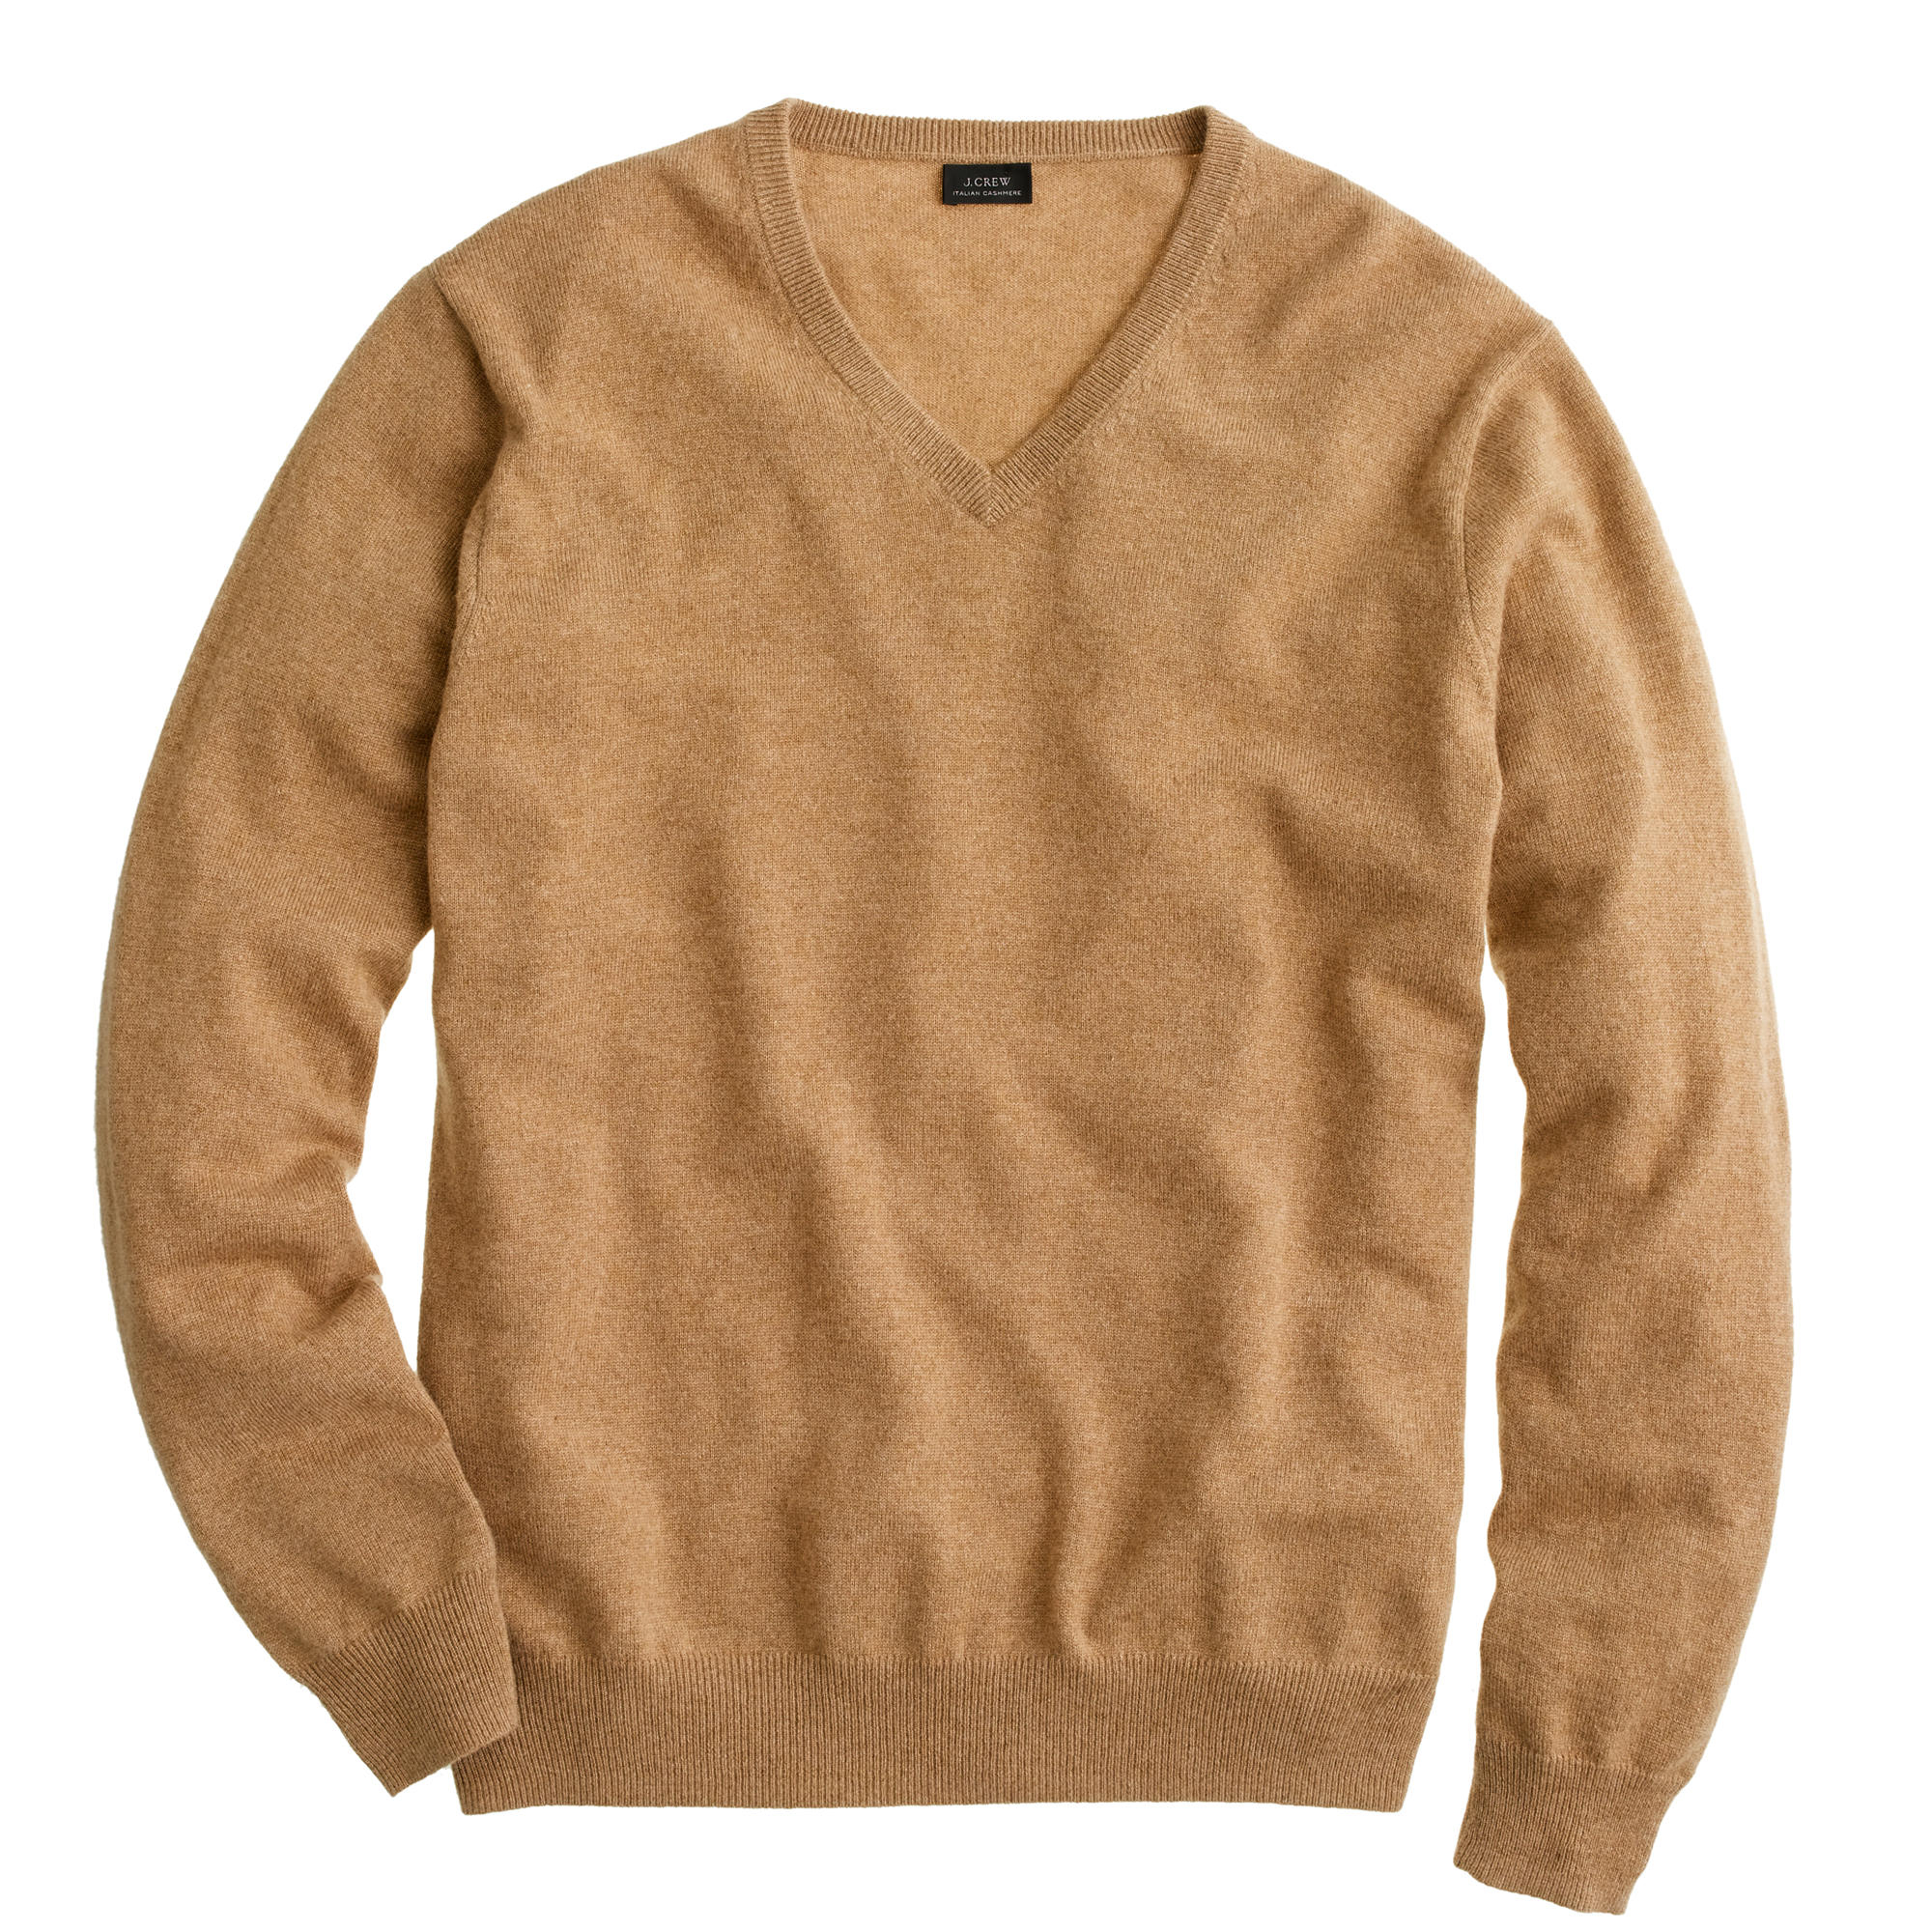 Shop online for Men's Designer Sweaters, Cashmere & Cardigans with Free Shipping and Free Returns. Bloomingdale's like no other store in the world. The Men's Store at Bloomingdale's Crewneck Donegal Cashmere Sweater Sale $ (30% OFF) Michael Kors Merino Wool Turtleneck - .